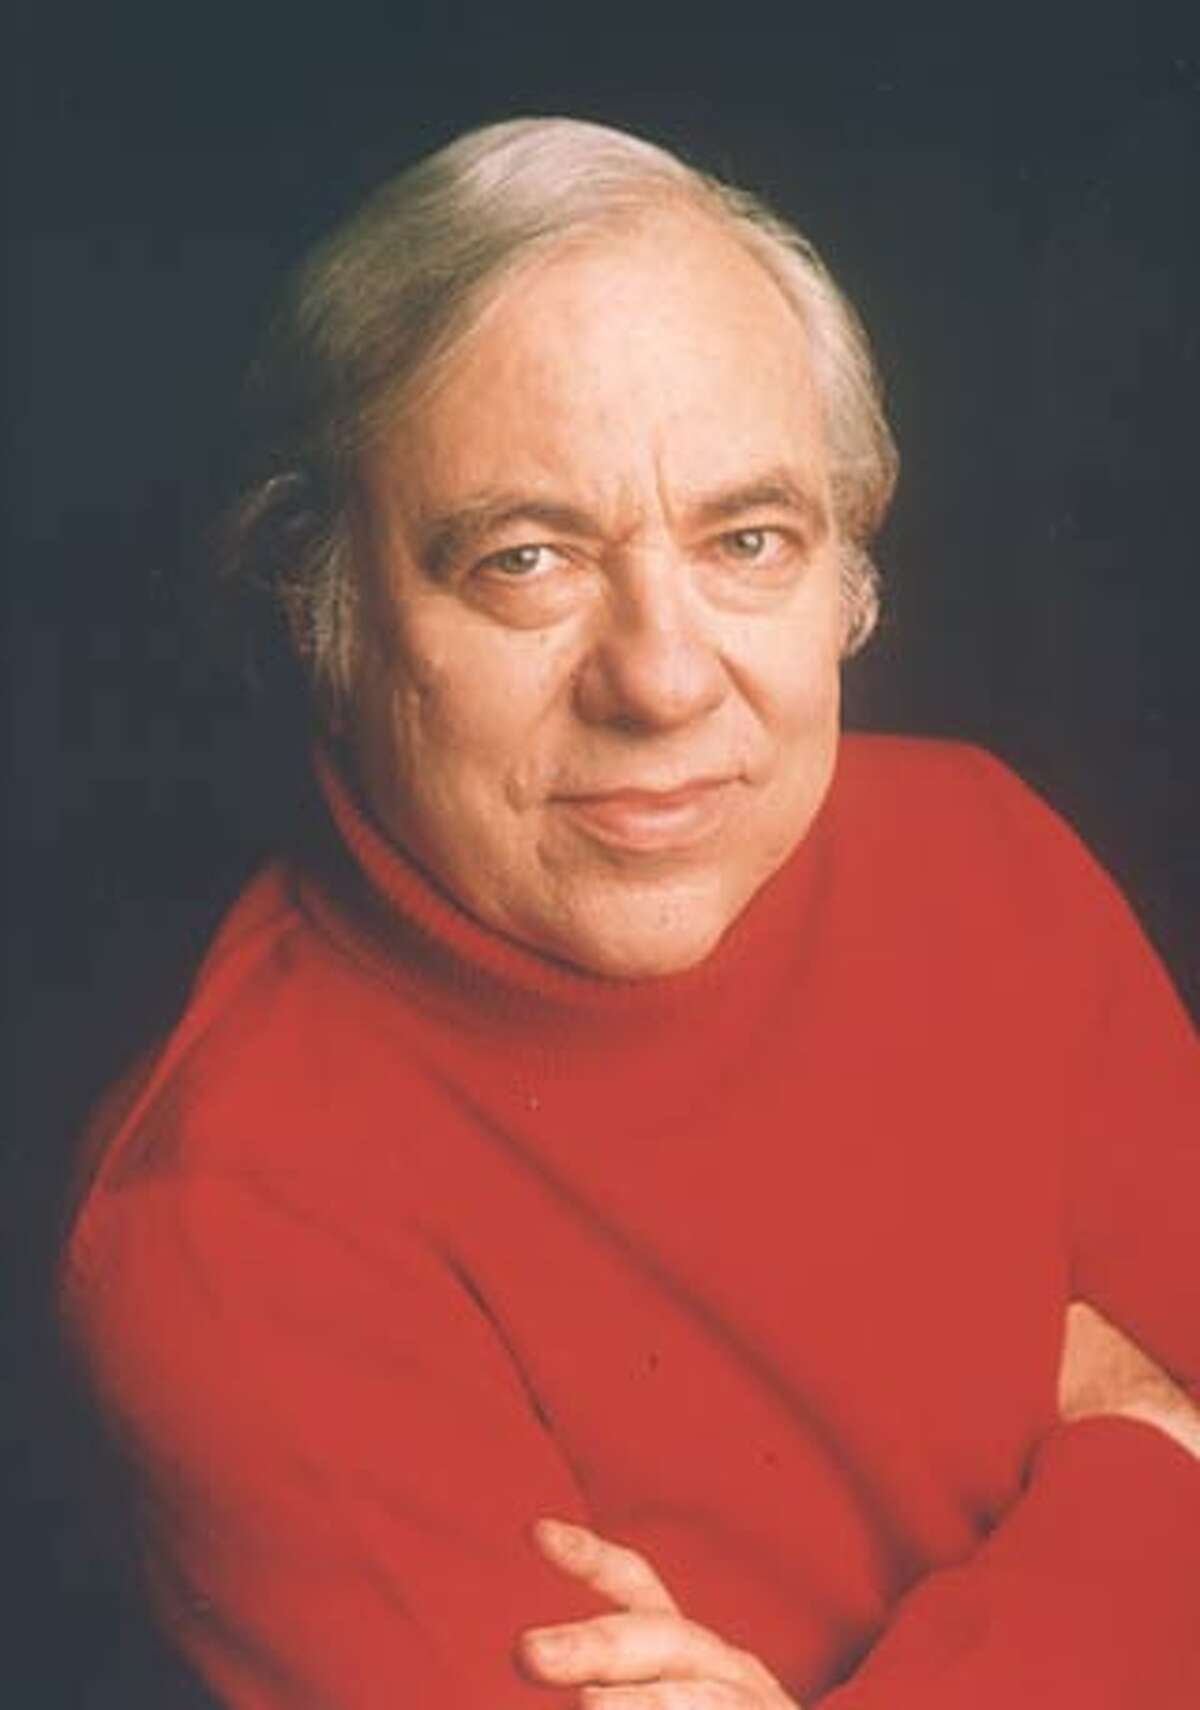 Celebrated Concert Pianist Richard Goode will be performing in recital at the inaugural Wendy Tisch Memorial Concert